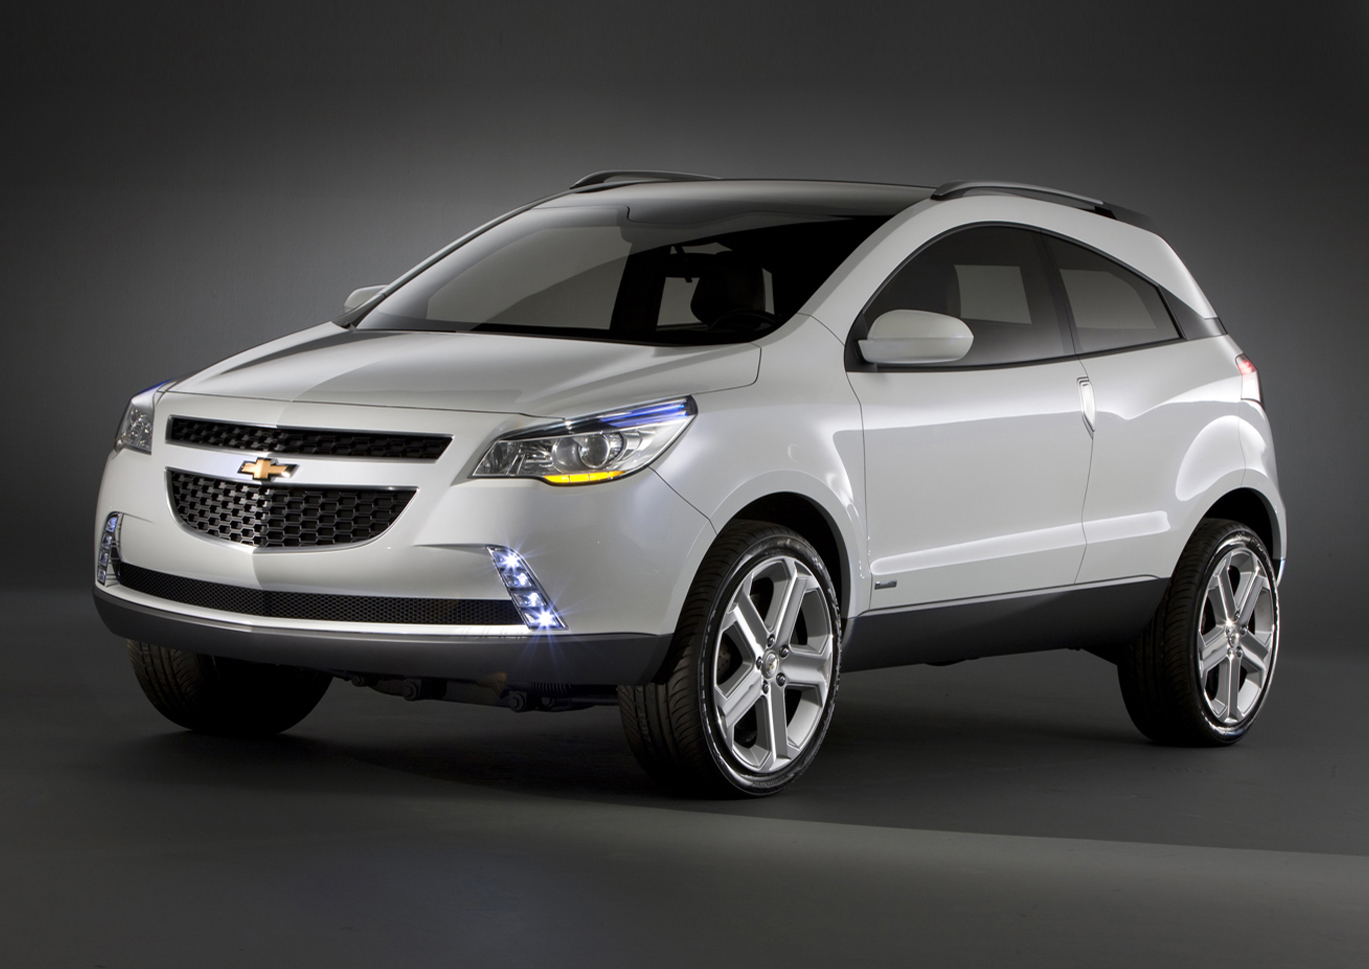 chevrolet reveals the gpix crossover coupe concept. Black Bedroom Furniture Sets. Home Design Ideas